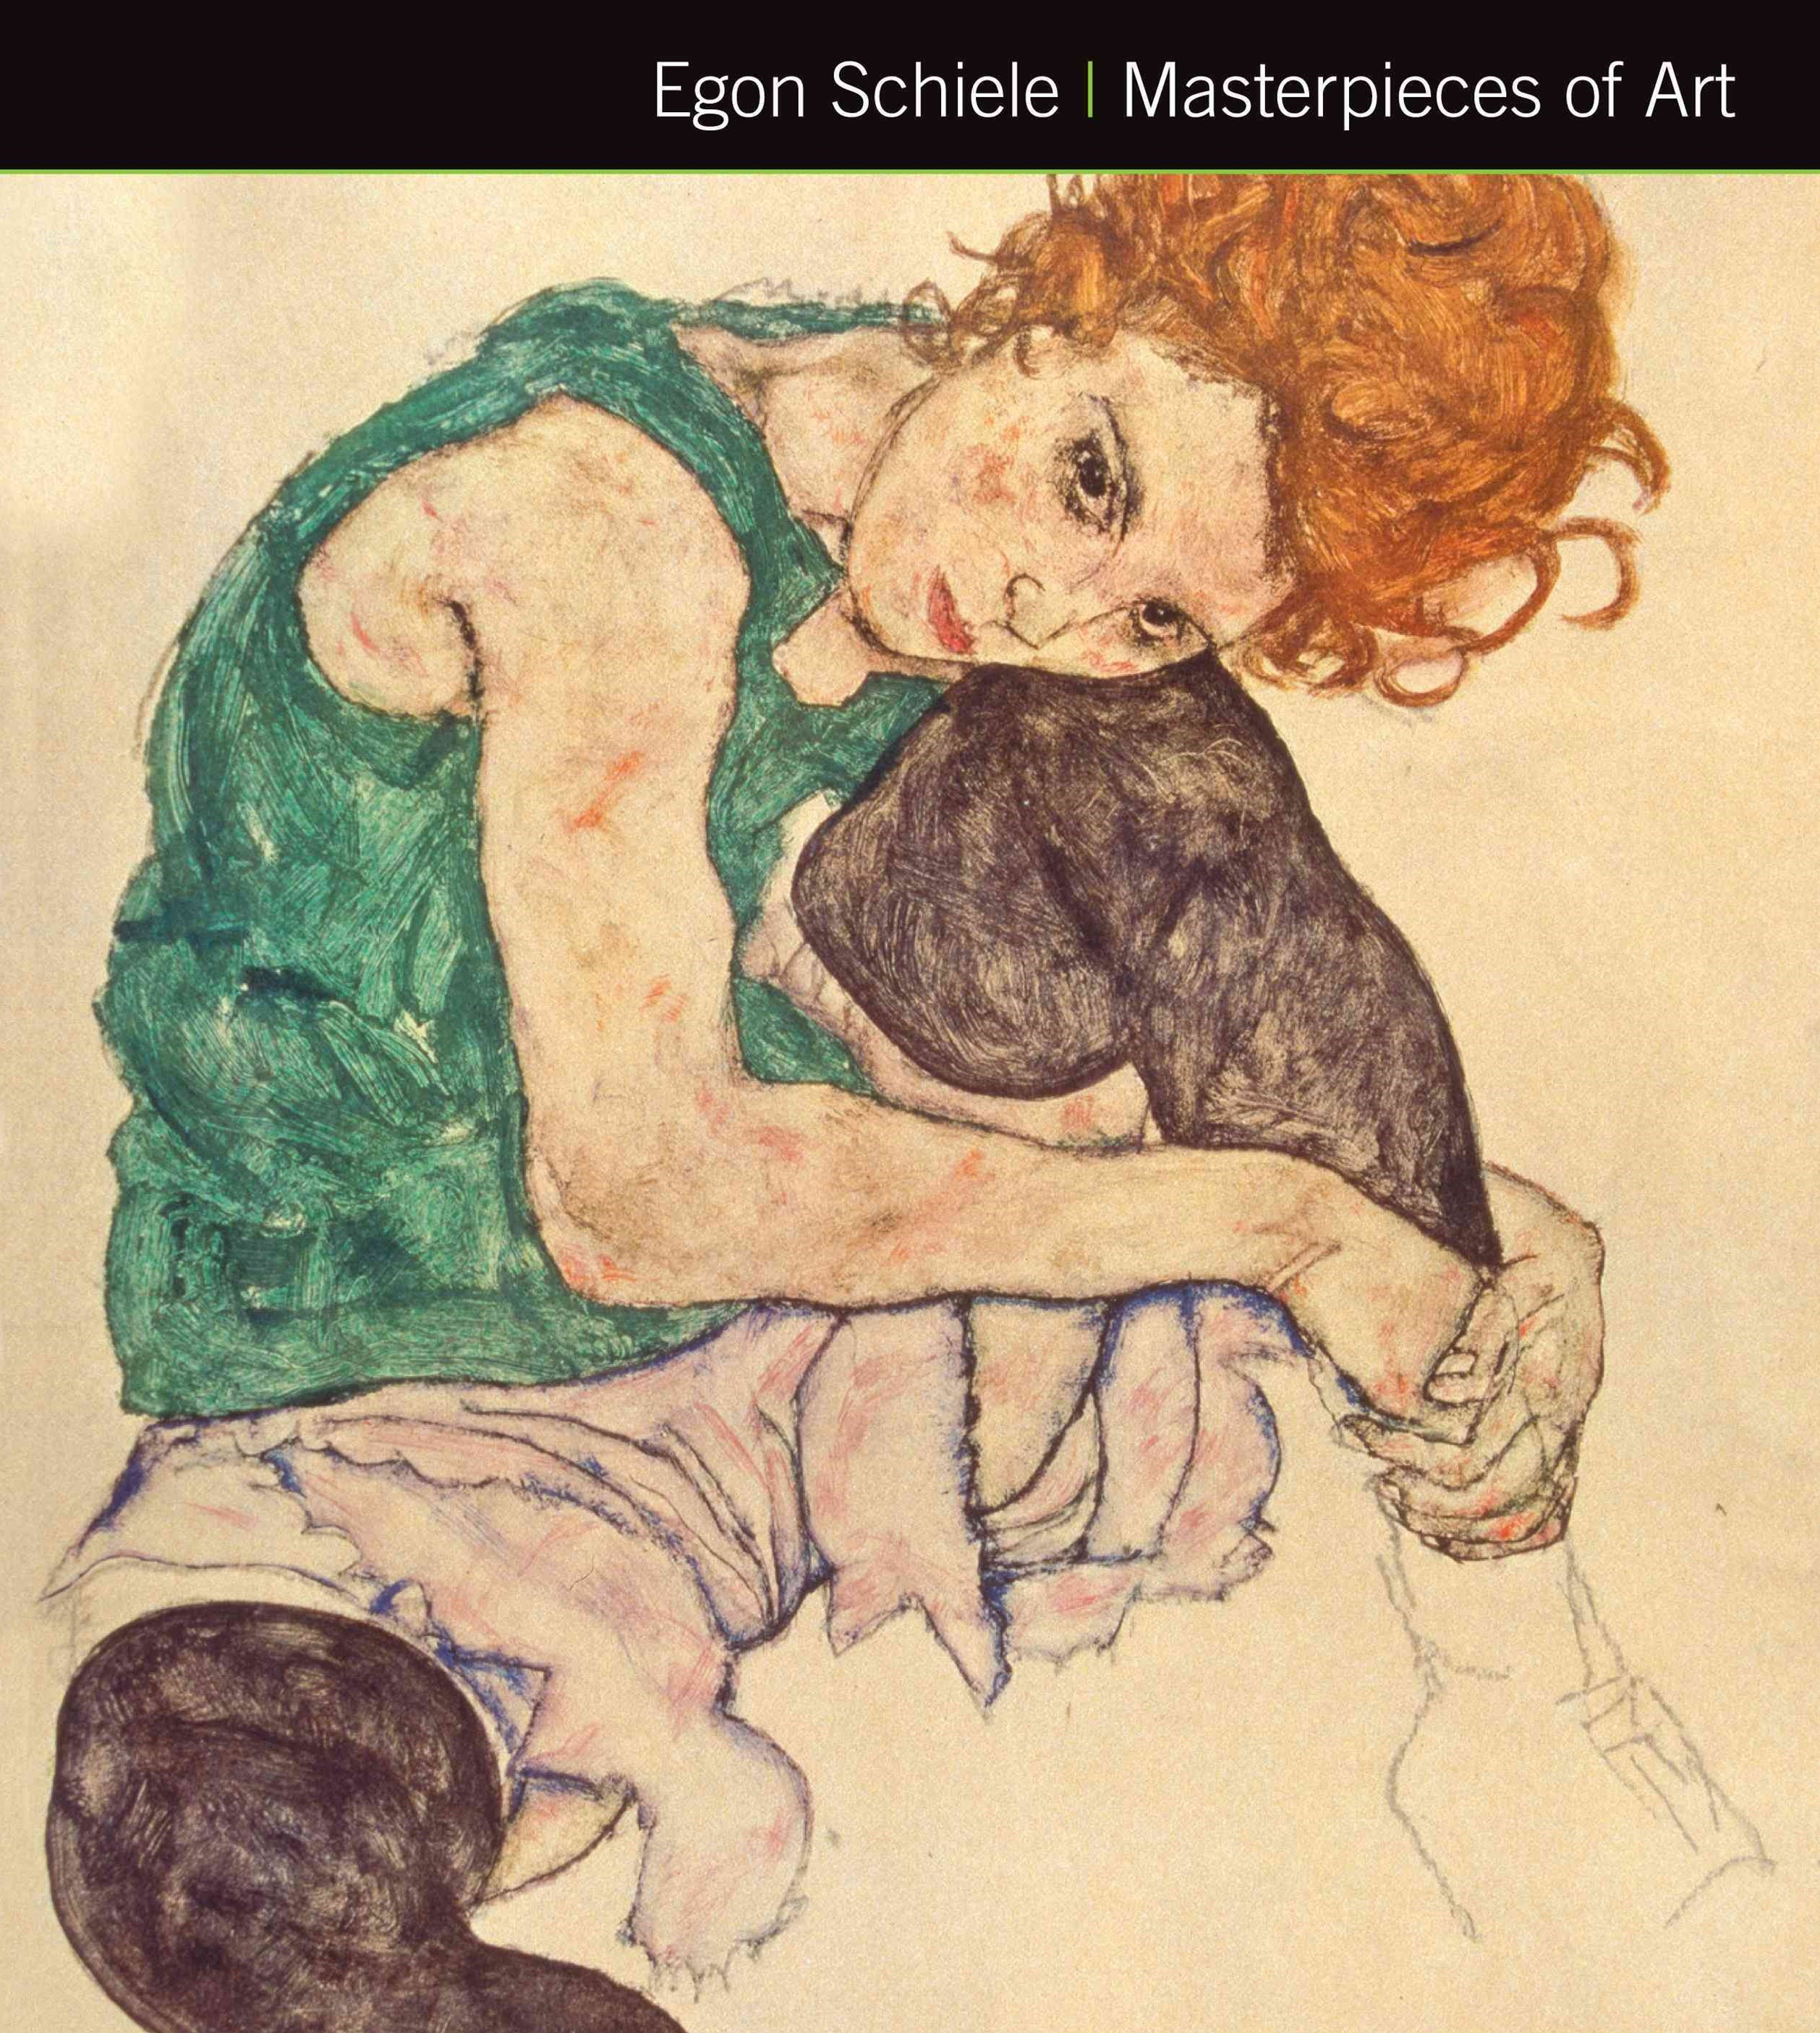 Egon Schiele: Masterpieces of Art